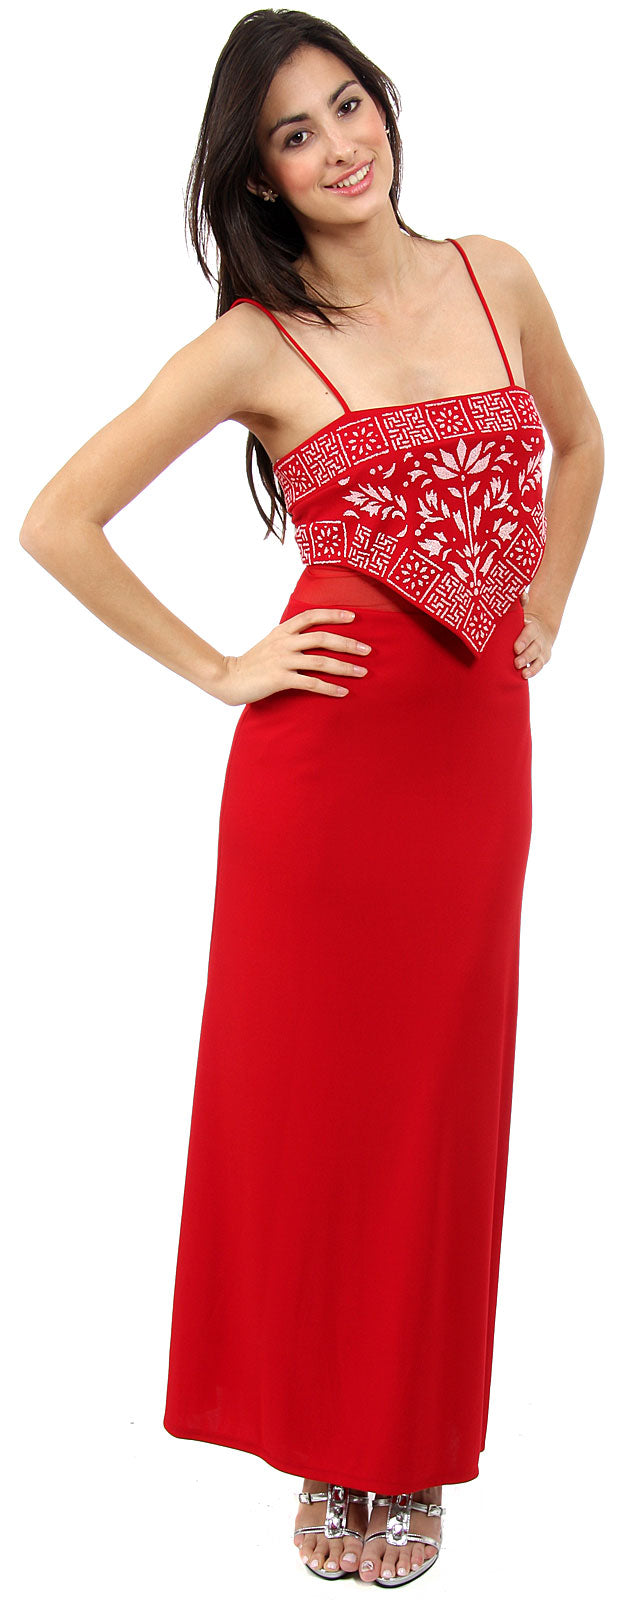 Main image of Spaghetti Strap Beaded Design Formal Dress